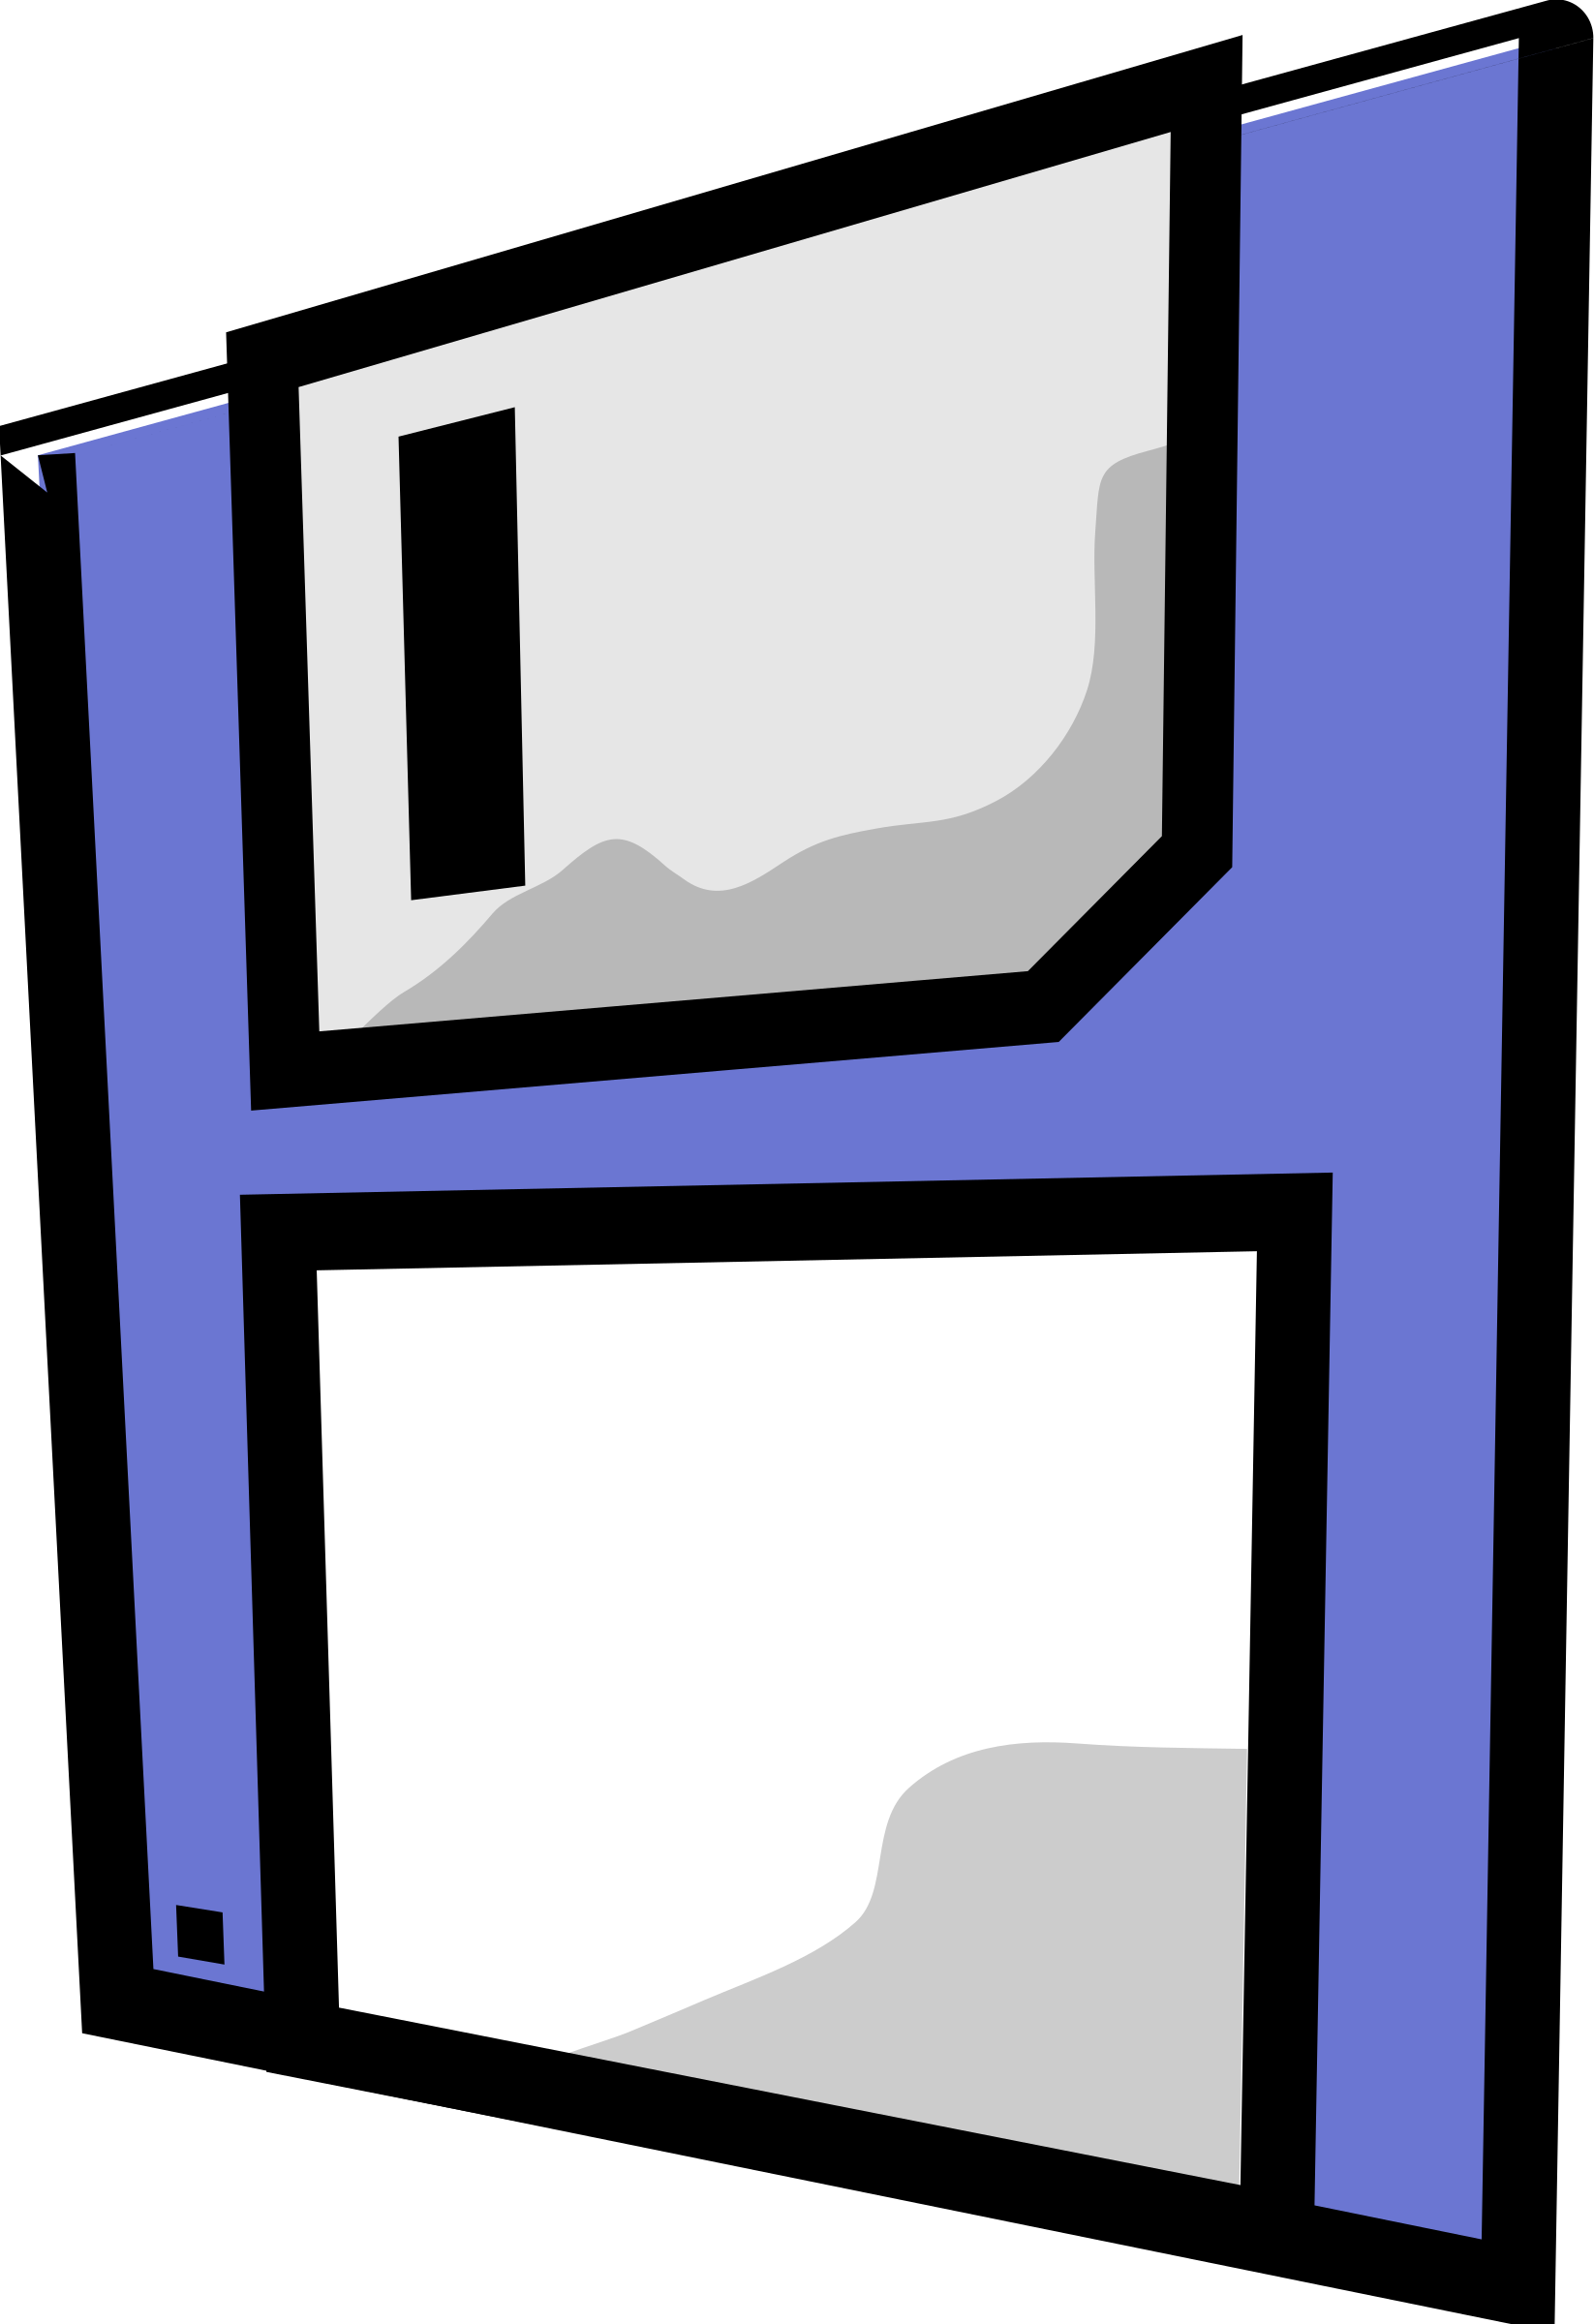 floppy disk by matze73